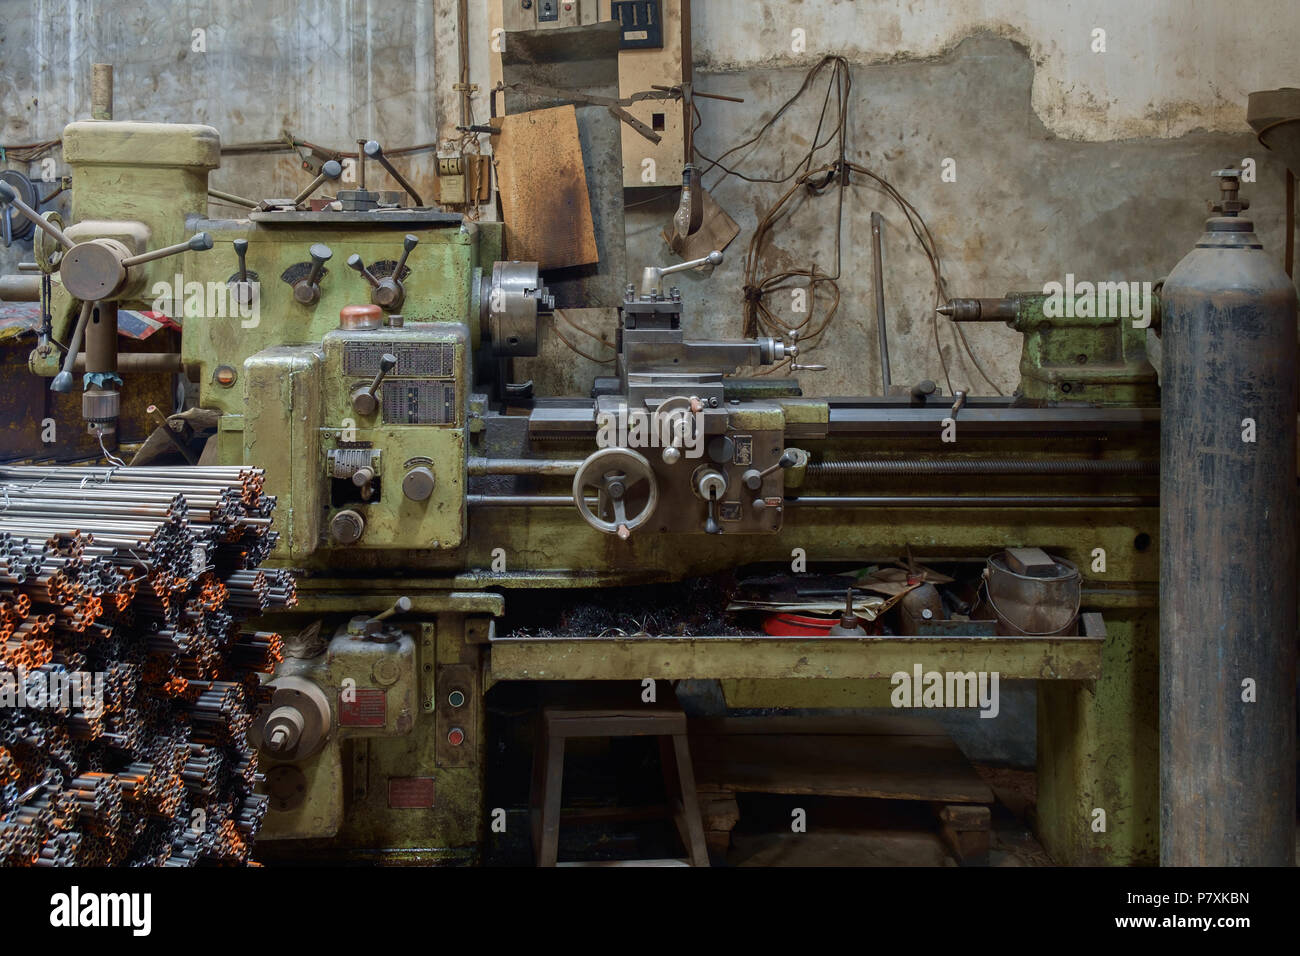 Lathe Machine Stock Photos  Lathe Machine Stock Images  Alamy